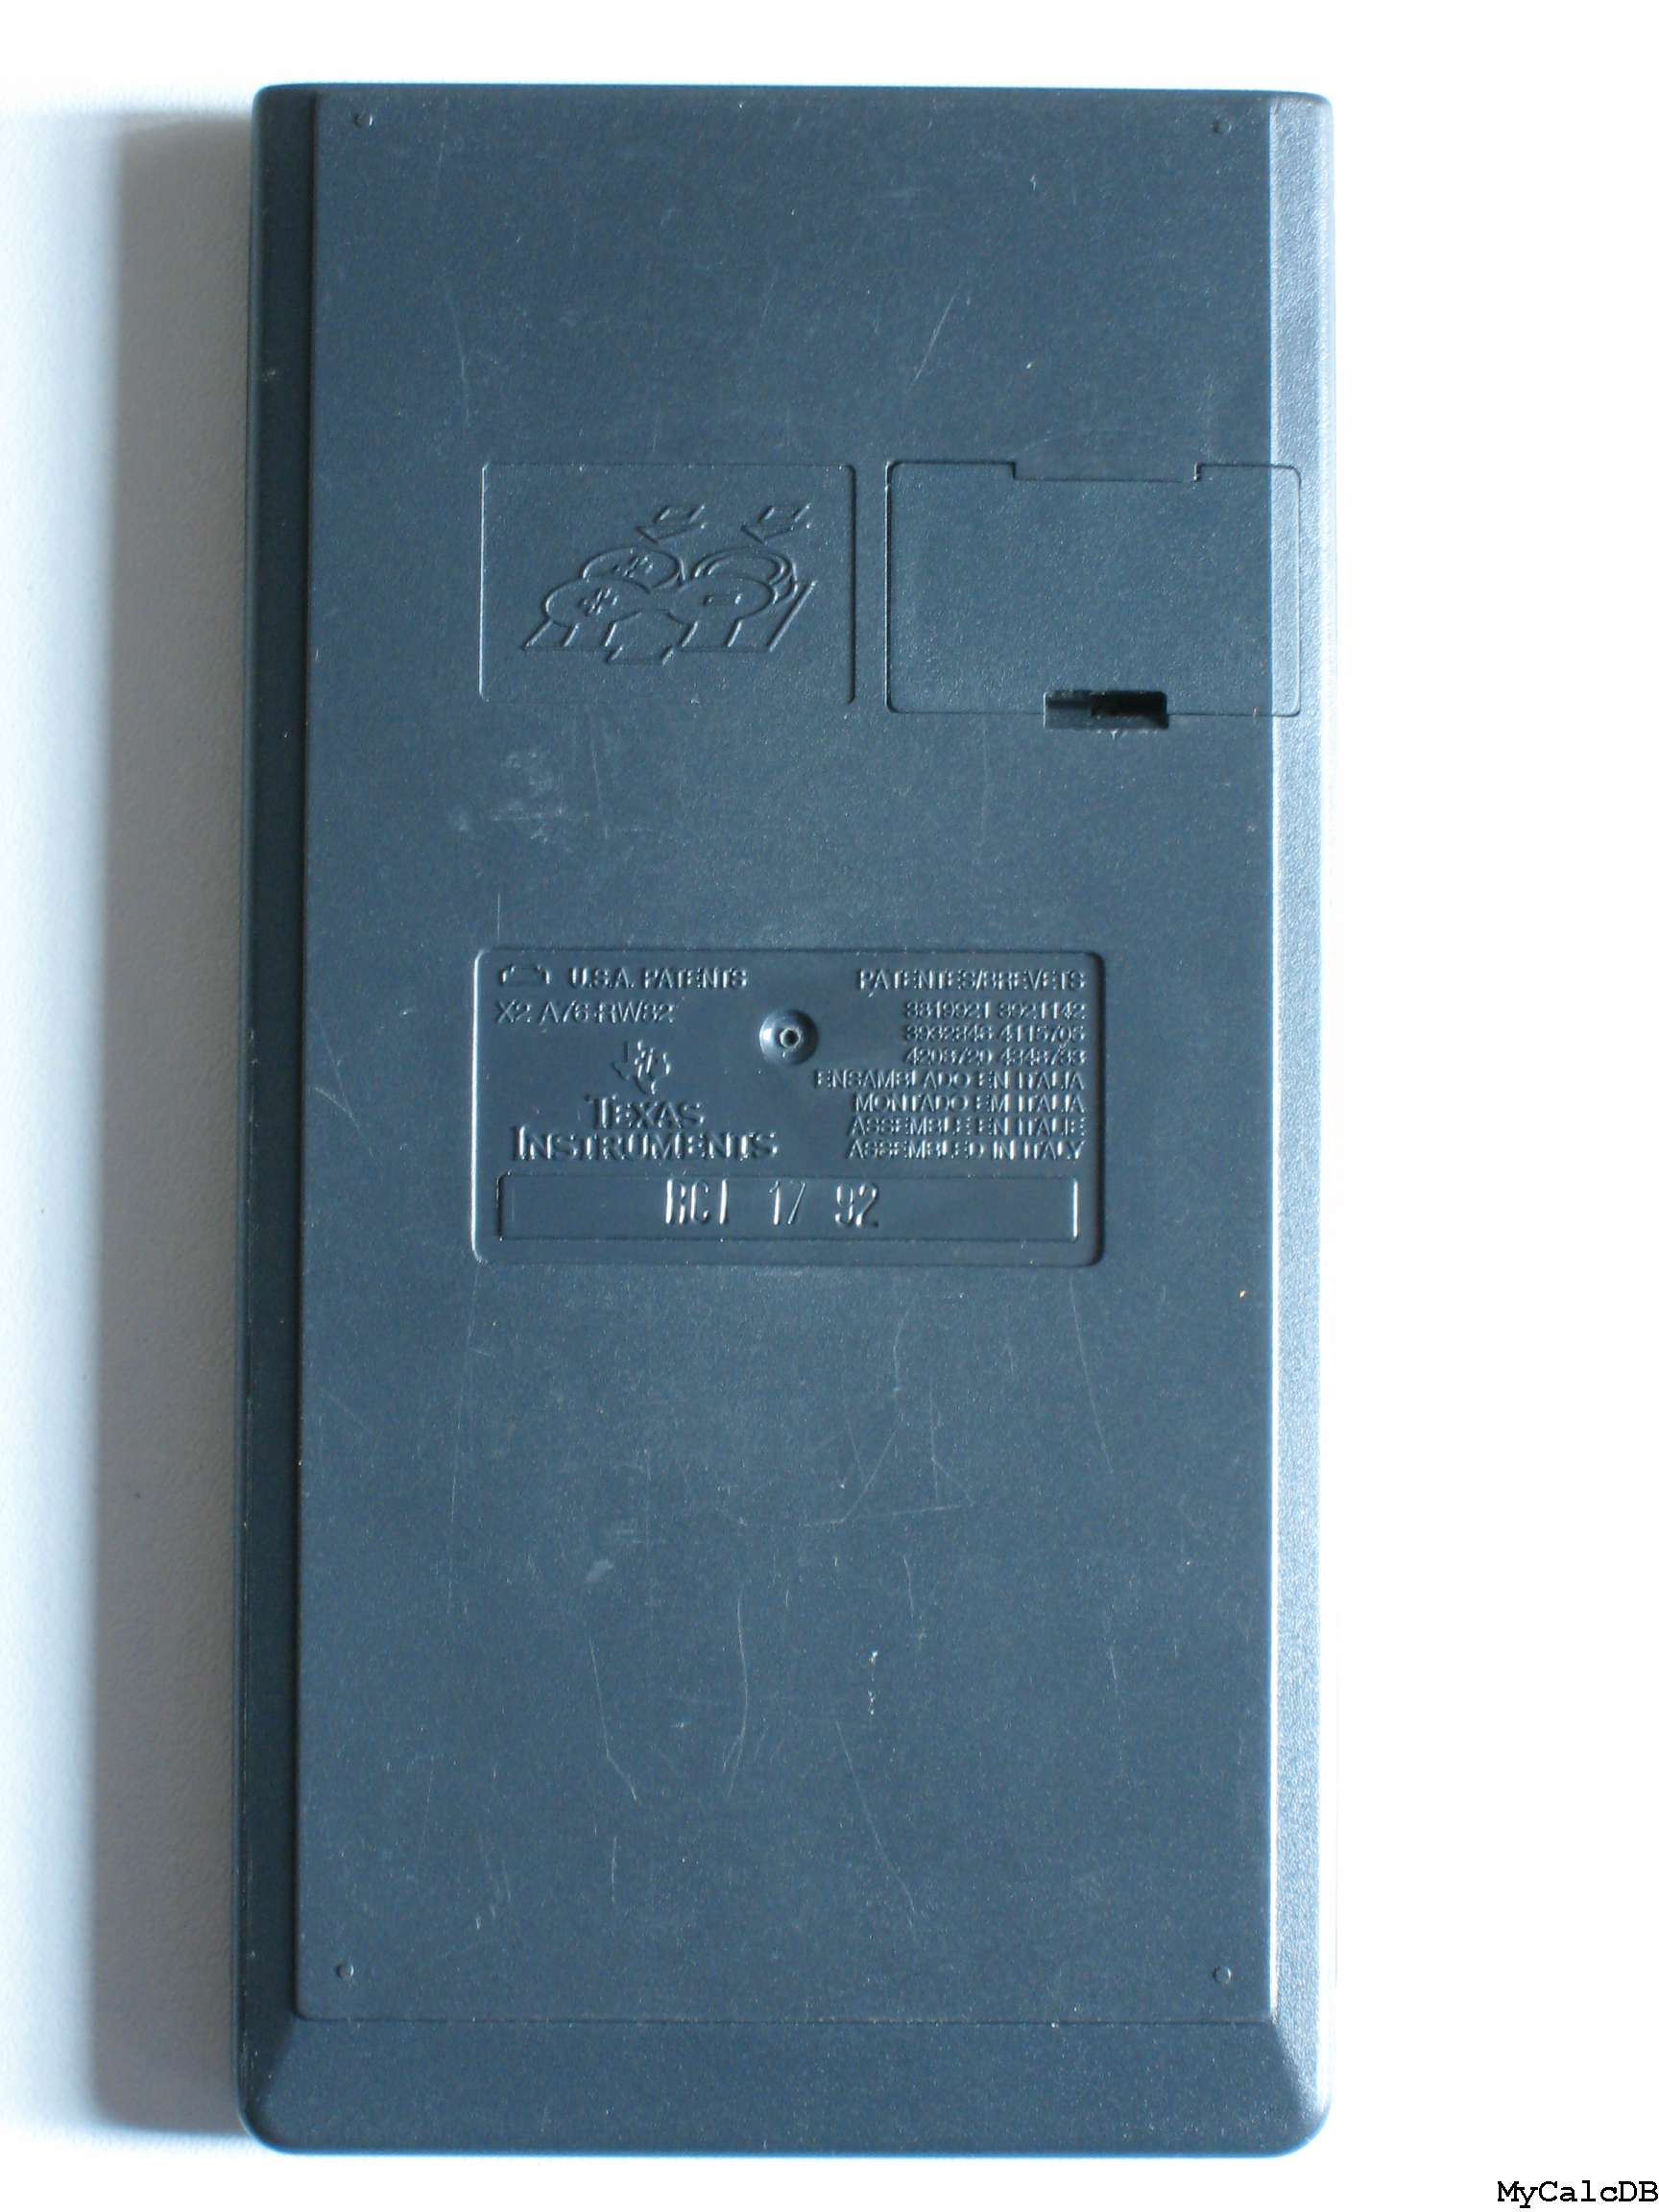 Texas Instruments TI-35X